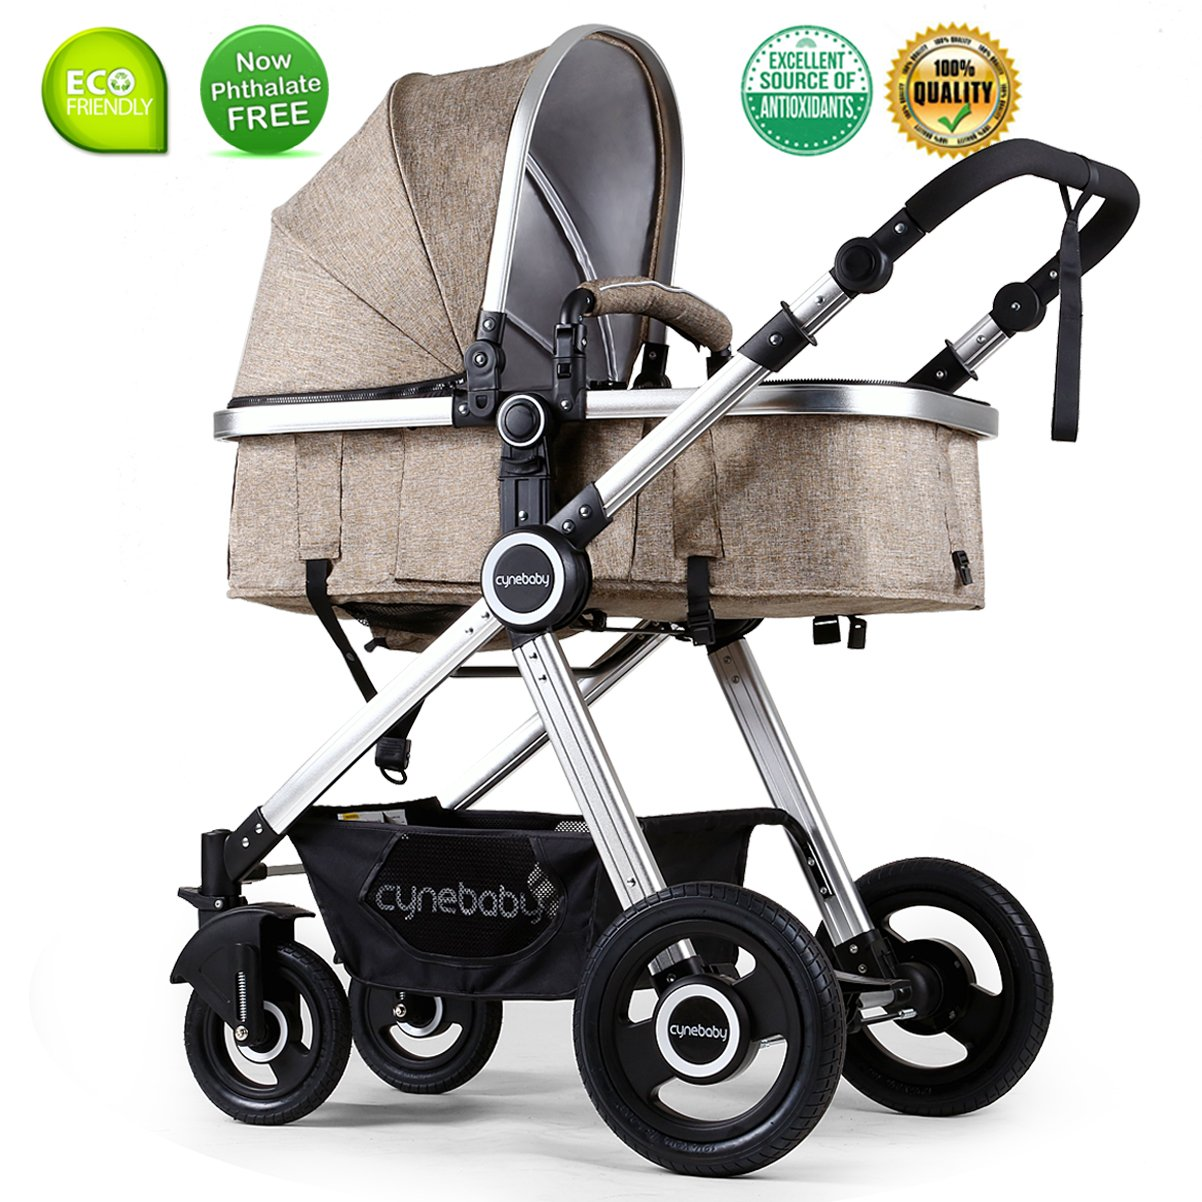 Infant Toddler Stroller Folding Convertible Carriage Infant Anti-Shock High View Luxury Baby Stroller Newborn Pram Stroller Pushchair Stroller for Babies(Light Camel) by Cynebaby (Image #1)